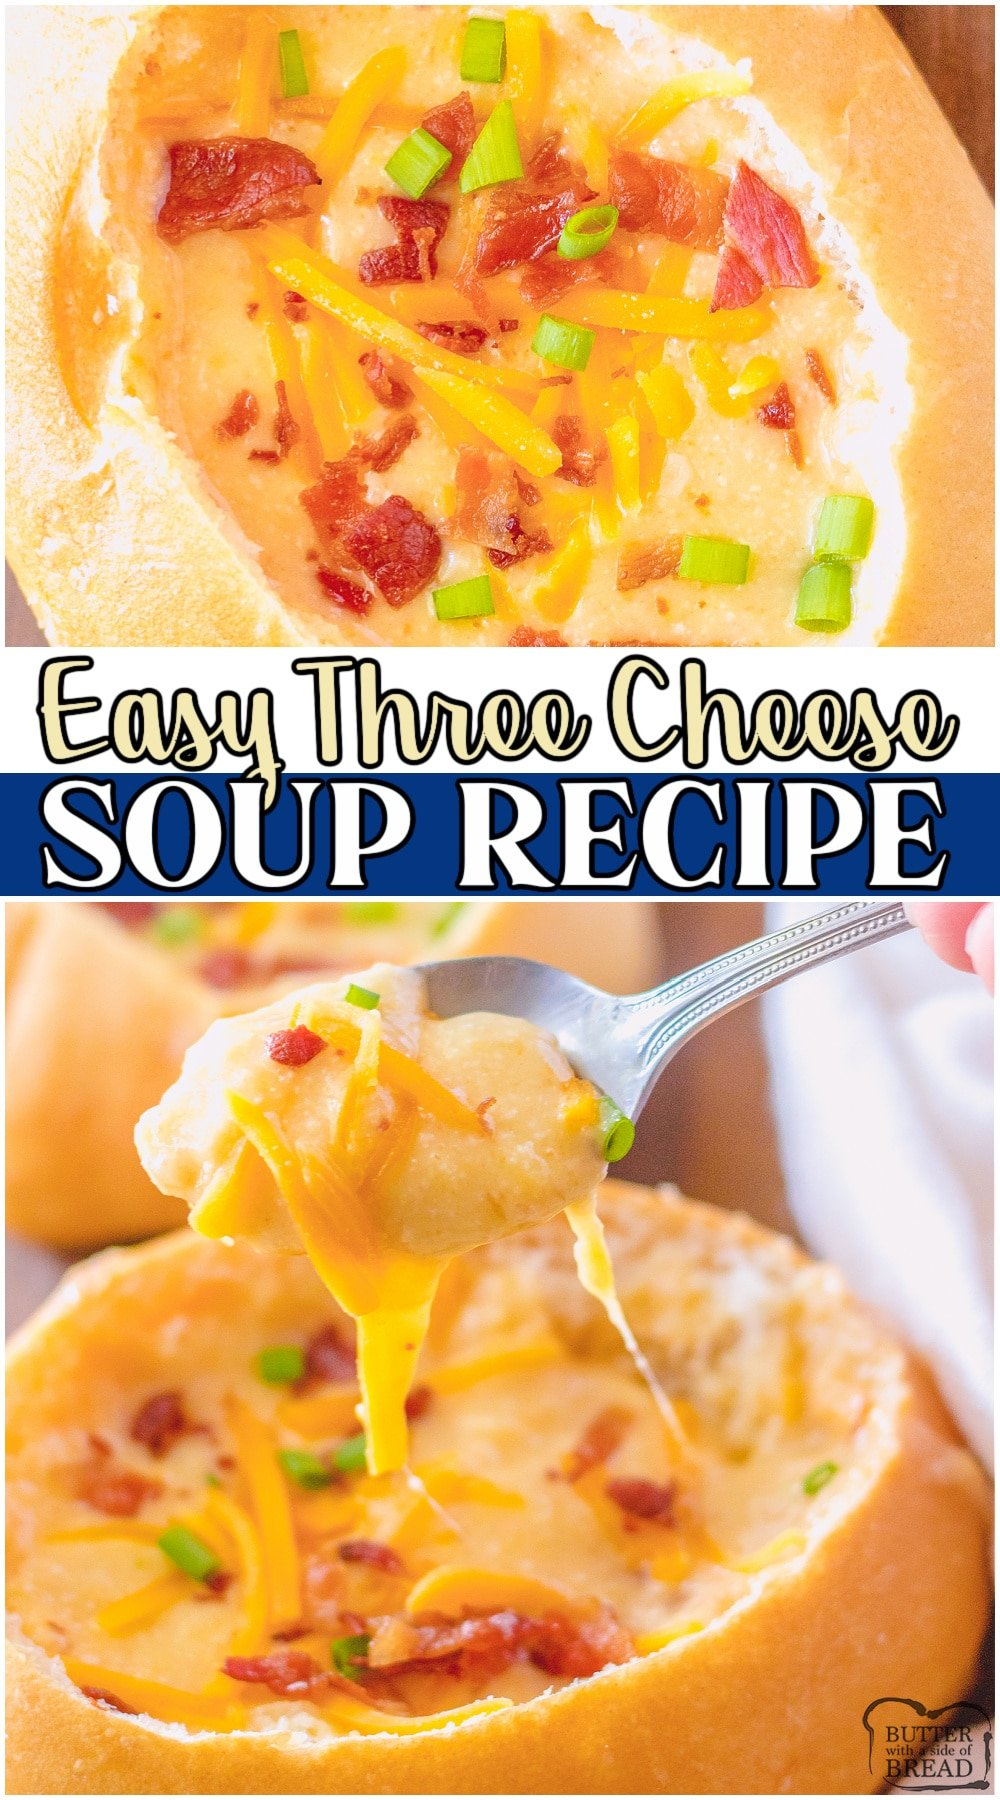 Creamy Three cheese soup recipe made with Cheddar, Monterey Jack and Swiss cheeses for a smooth & flavorful comforting soup! Served in bread bowls & topped with bacon & more cheese for a warm & hearty Fall dinner. #soup #cheese #comfort #cheesysoup #easyrecipe from BUTTER WITH A SIDE OF BREAD